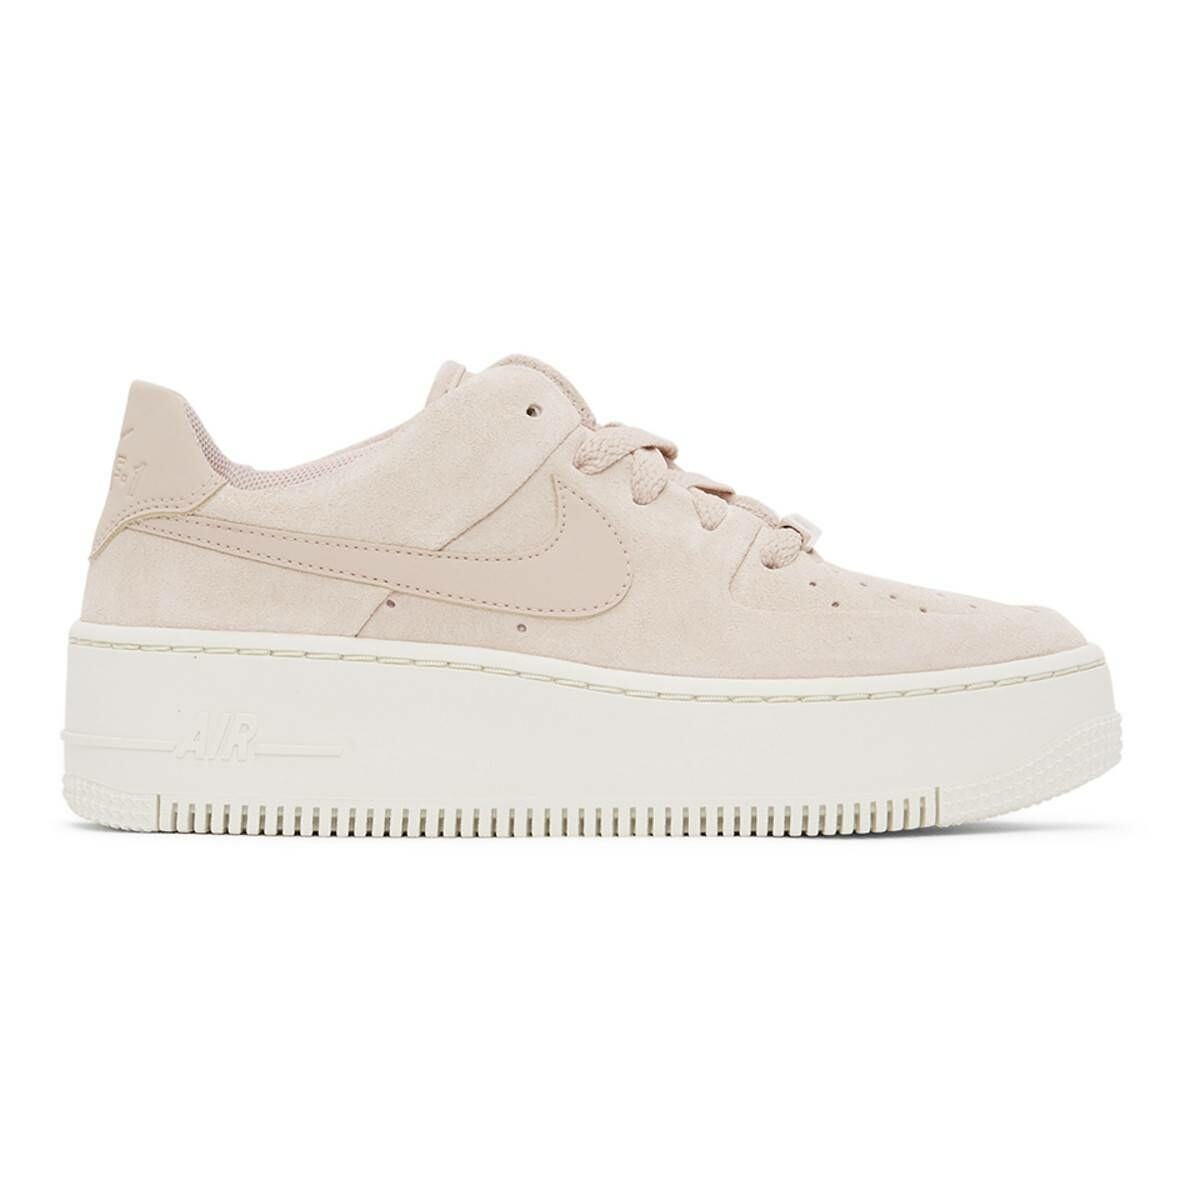 Nike Beige Air Force 1 Sage Sneakers Ssense USA WOMEN Women SHOES Womens SNEAKER